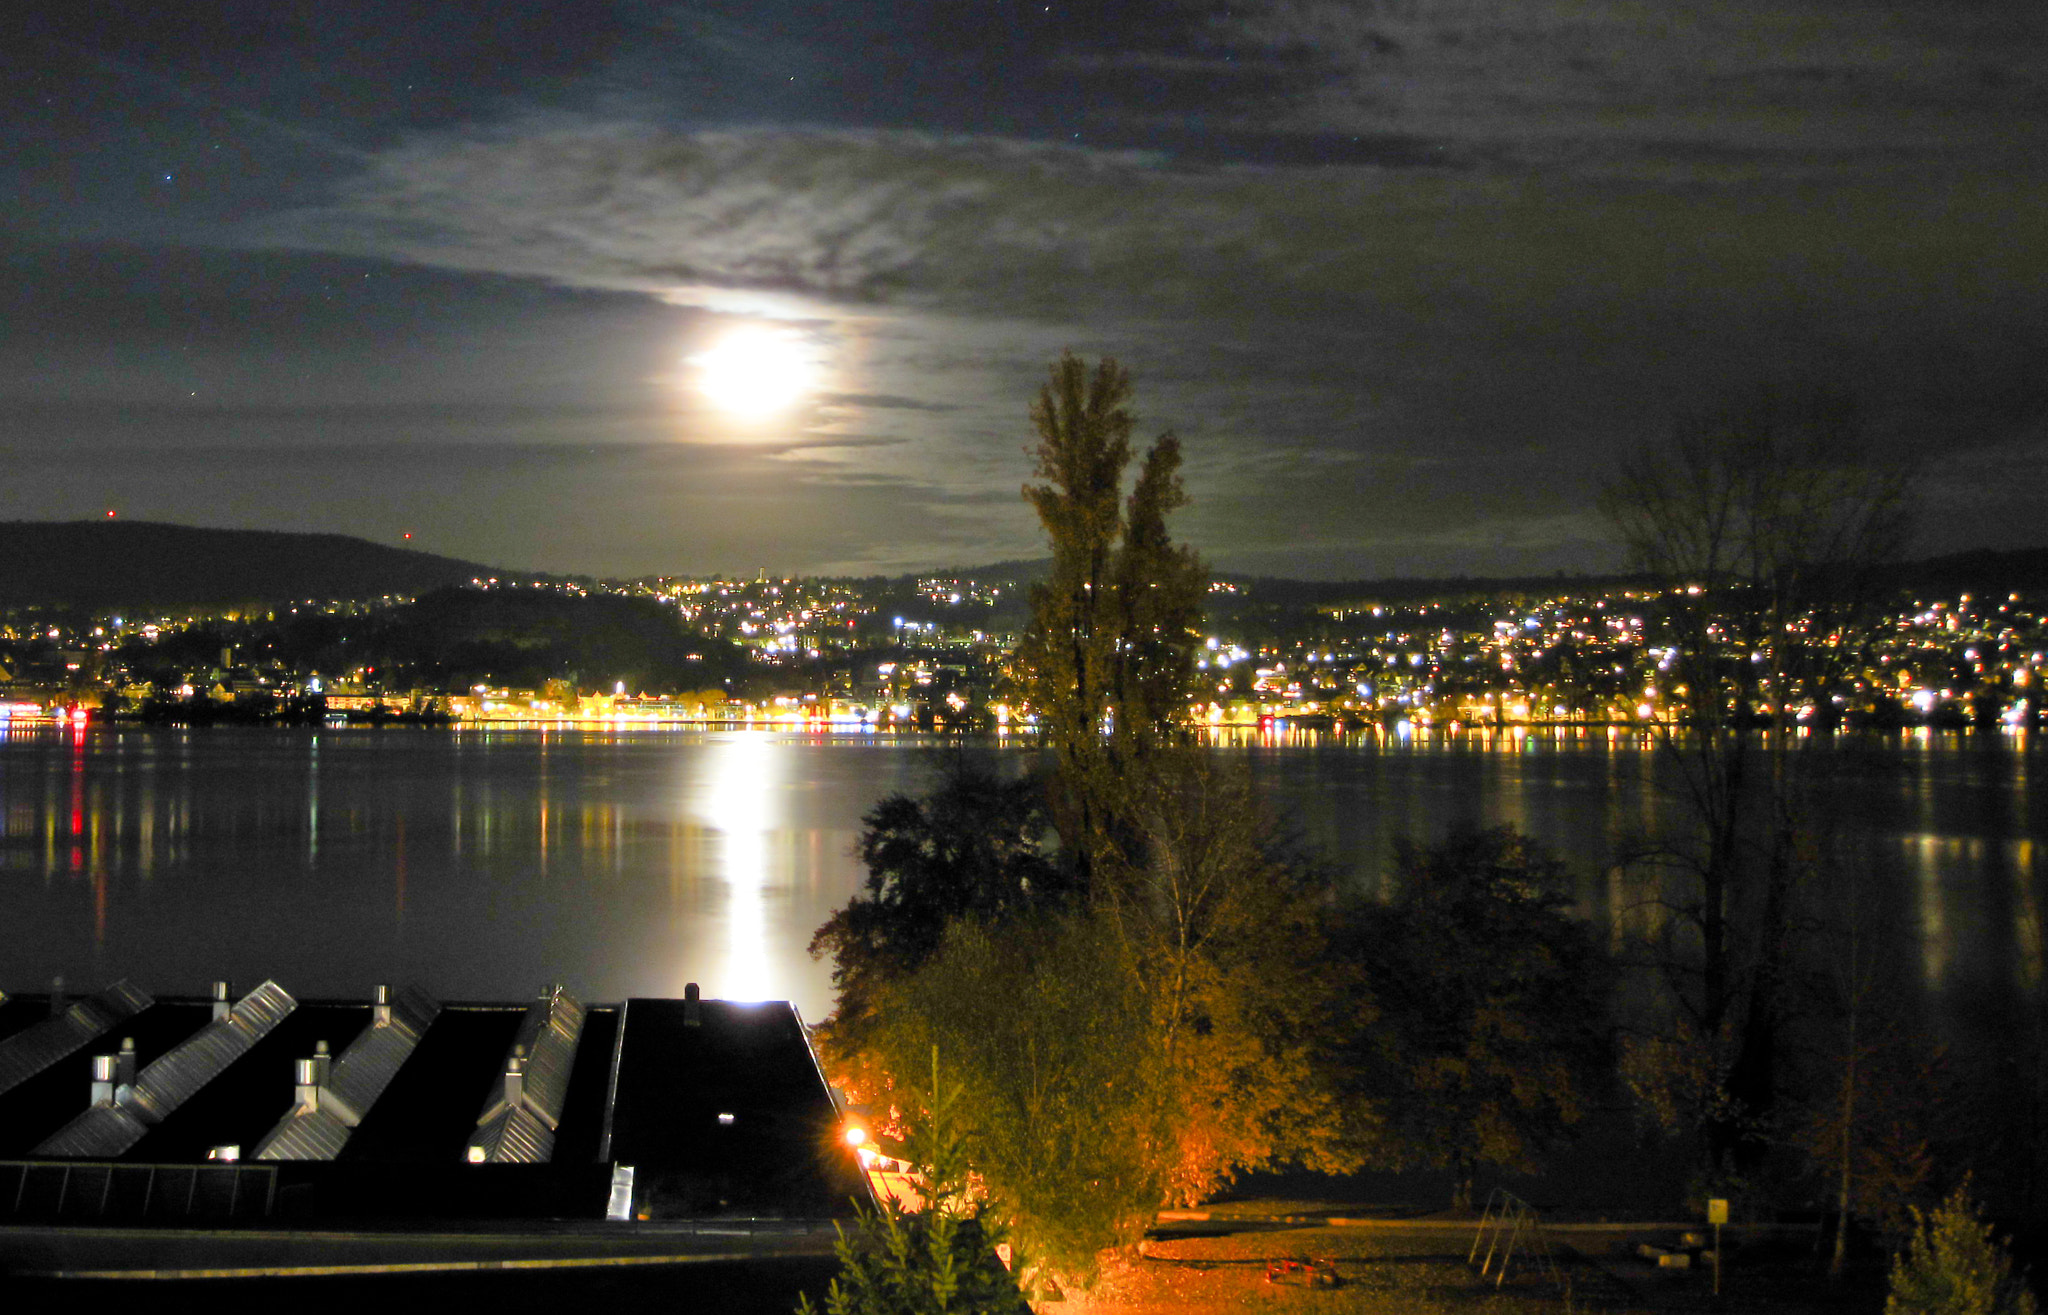 Photograph Moon over Lake Zurich by Thomas Marti on 500px